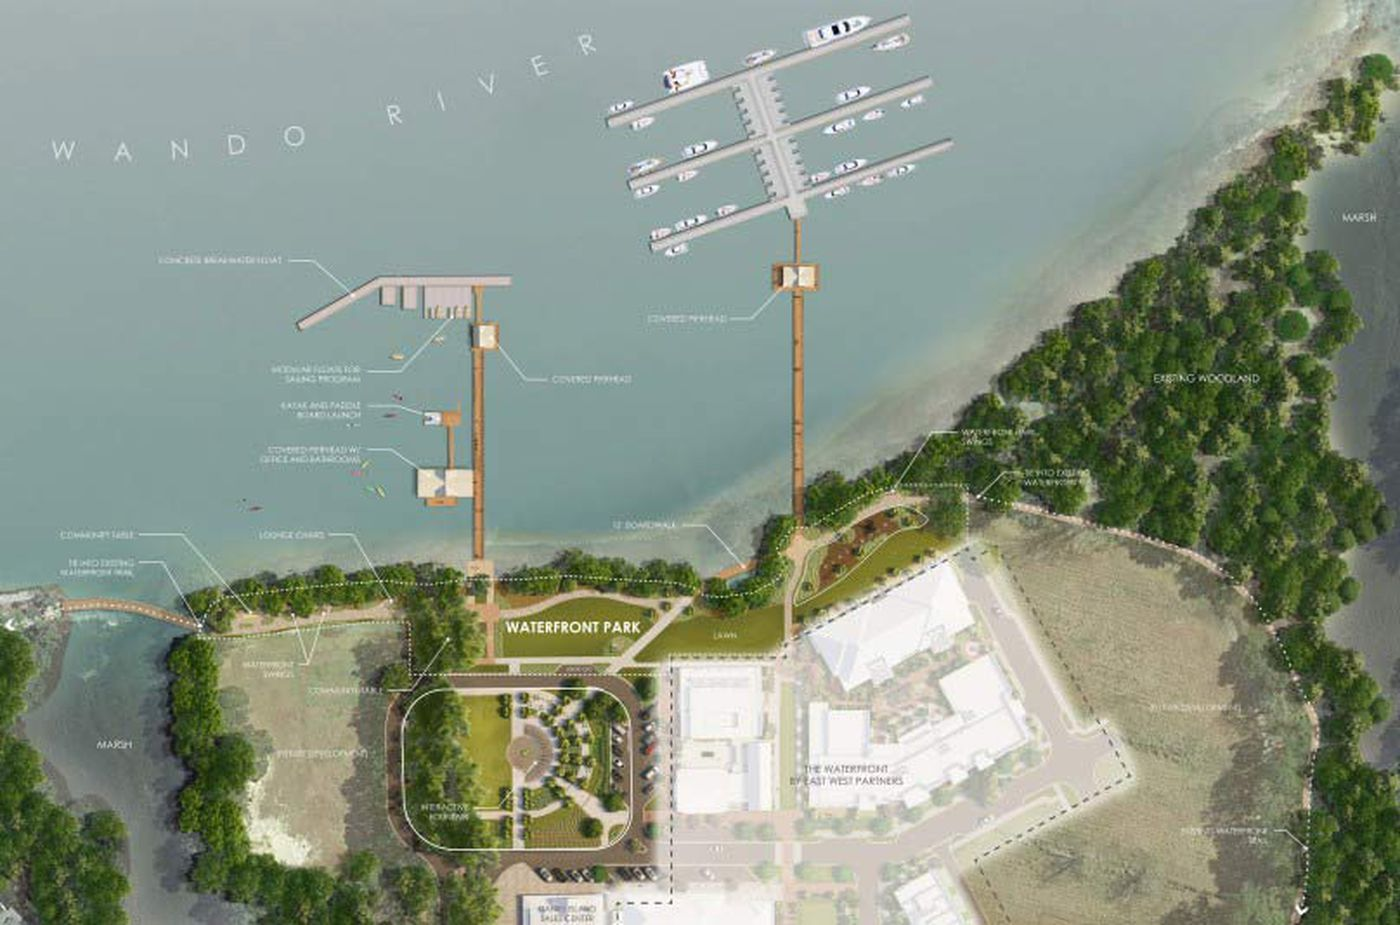 The new yacht club will offer boat club memberships, kayak and paddleboard rentals, sailing opportunities, fishing and crabbing, water transportation through the Daniel Island Ferry, and other special event space where a band could play.